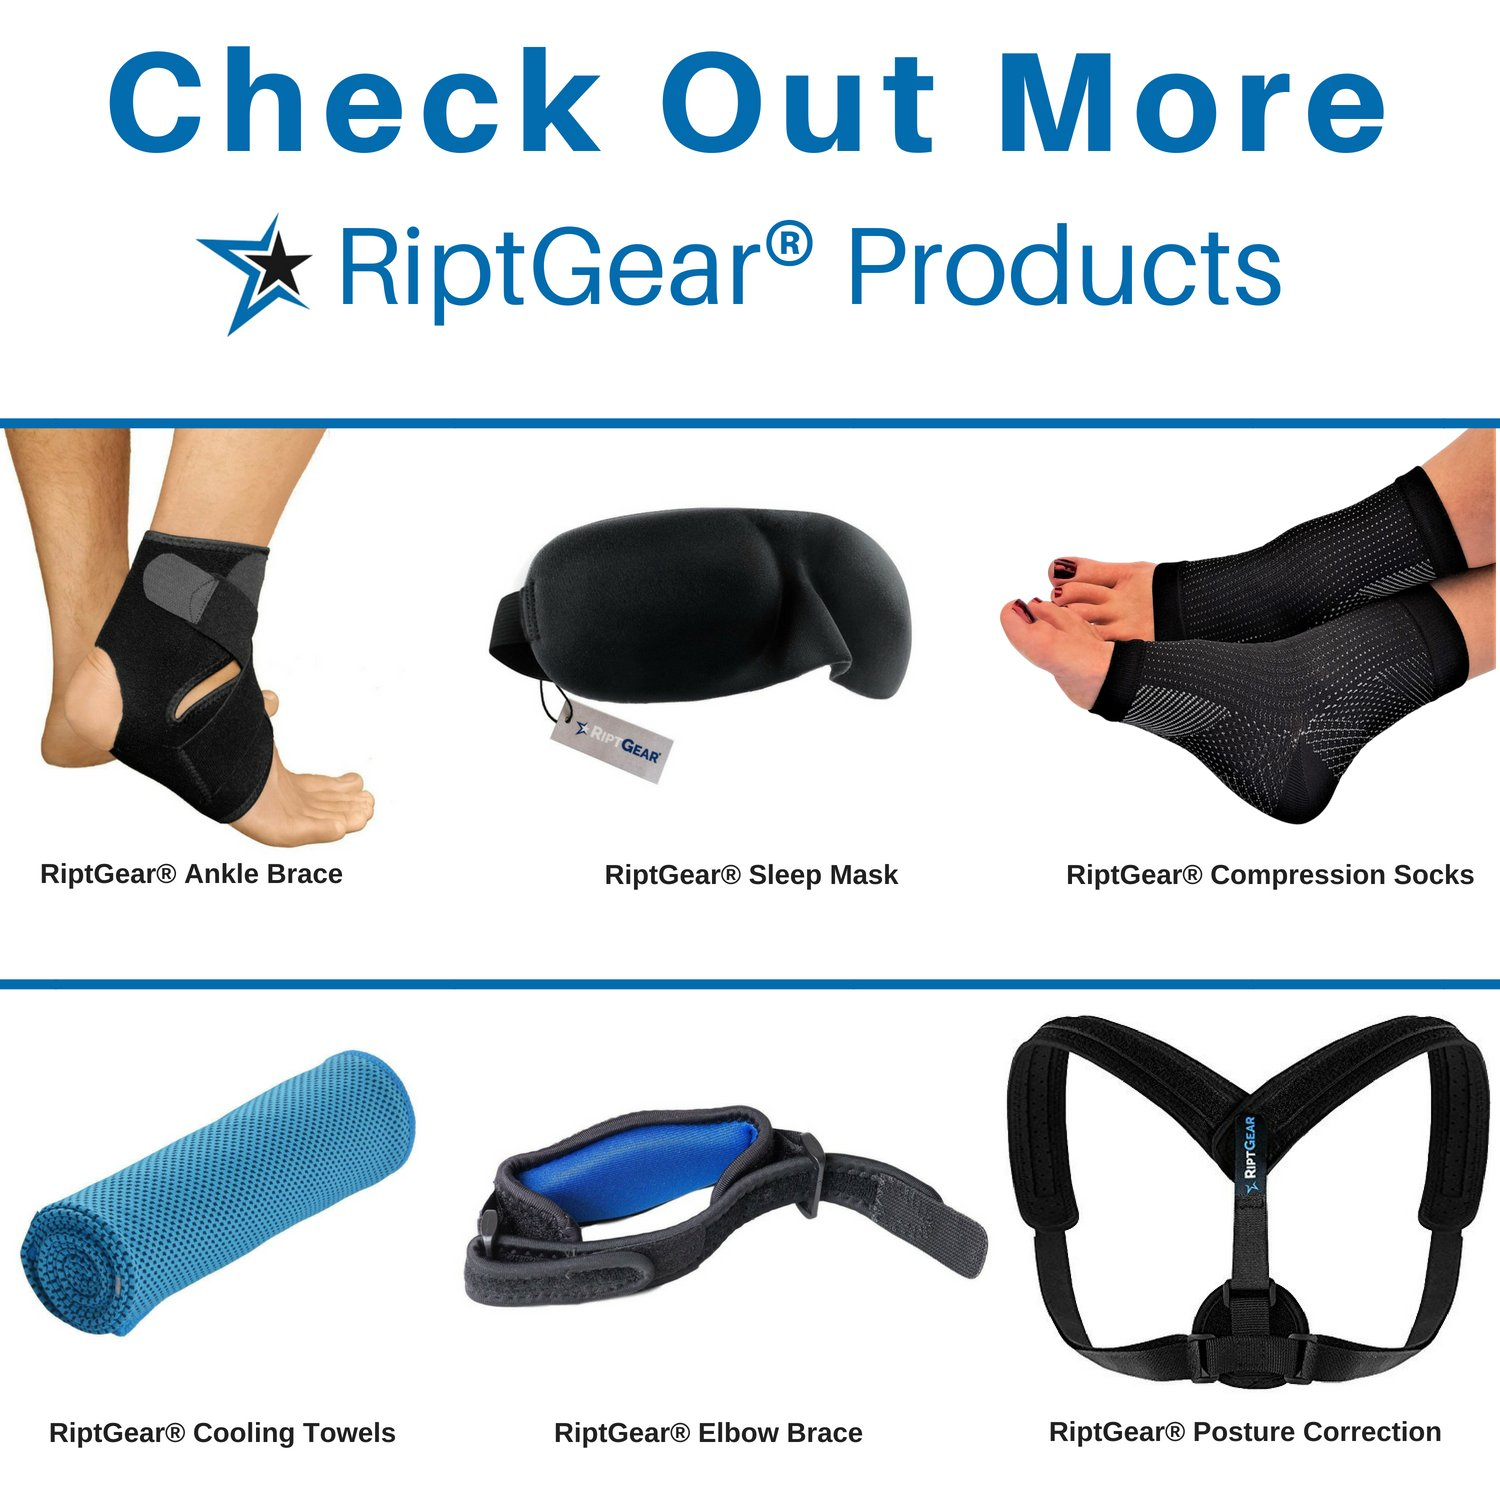 NEW-Knee-Compression-Sleeve-for-Men-and-Women-by-RiptGear-Knee-Brace-Support thumbnail 31